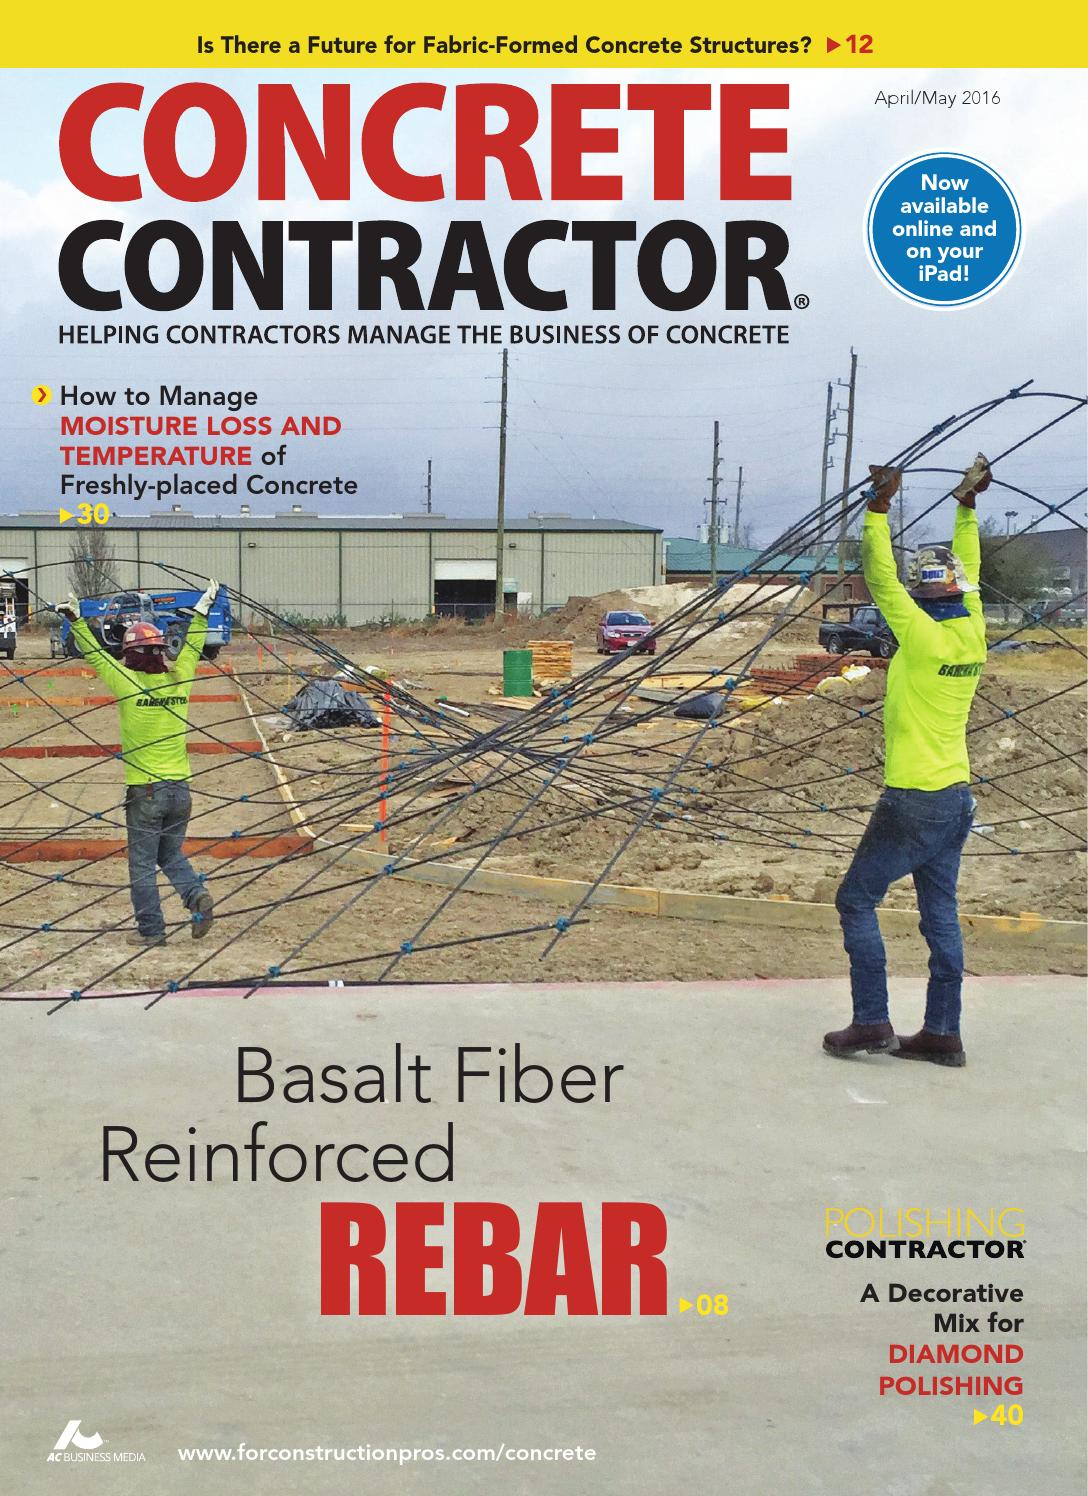 Concrete Contractor April/May 2016 by ForConstructionPros com - issuu